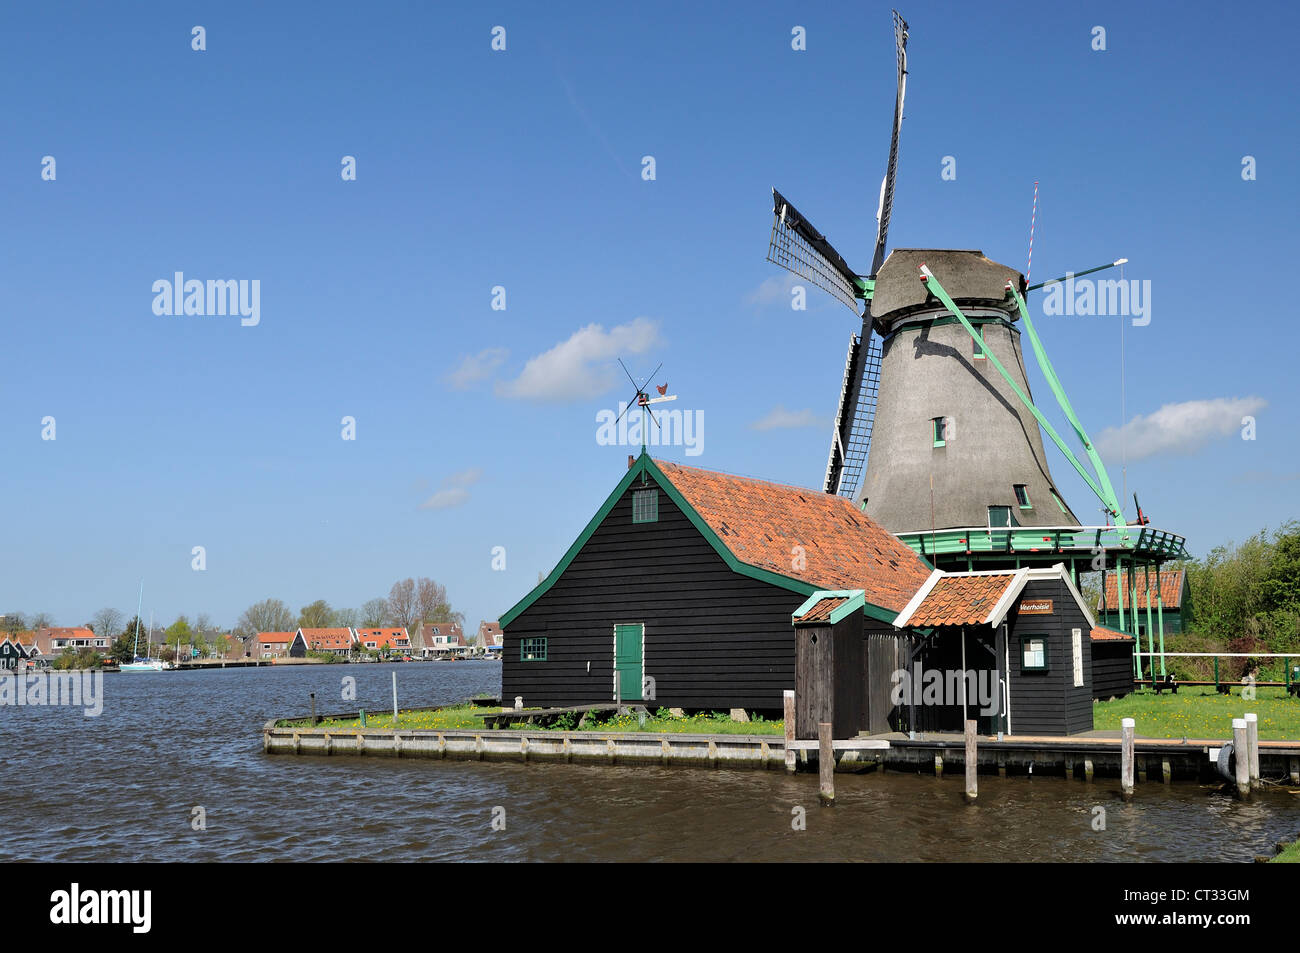 windmill on river, Zaanse Schans view of traditional windmill at touristic location, shot in bright spring light - Stock Image